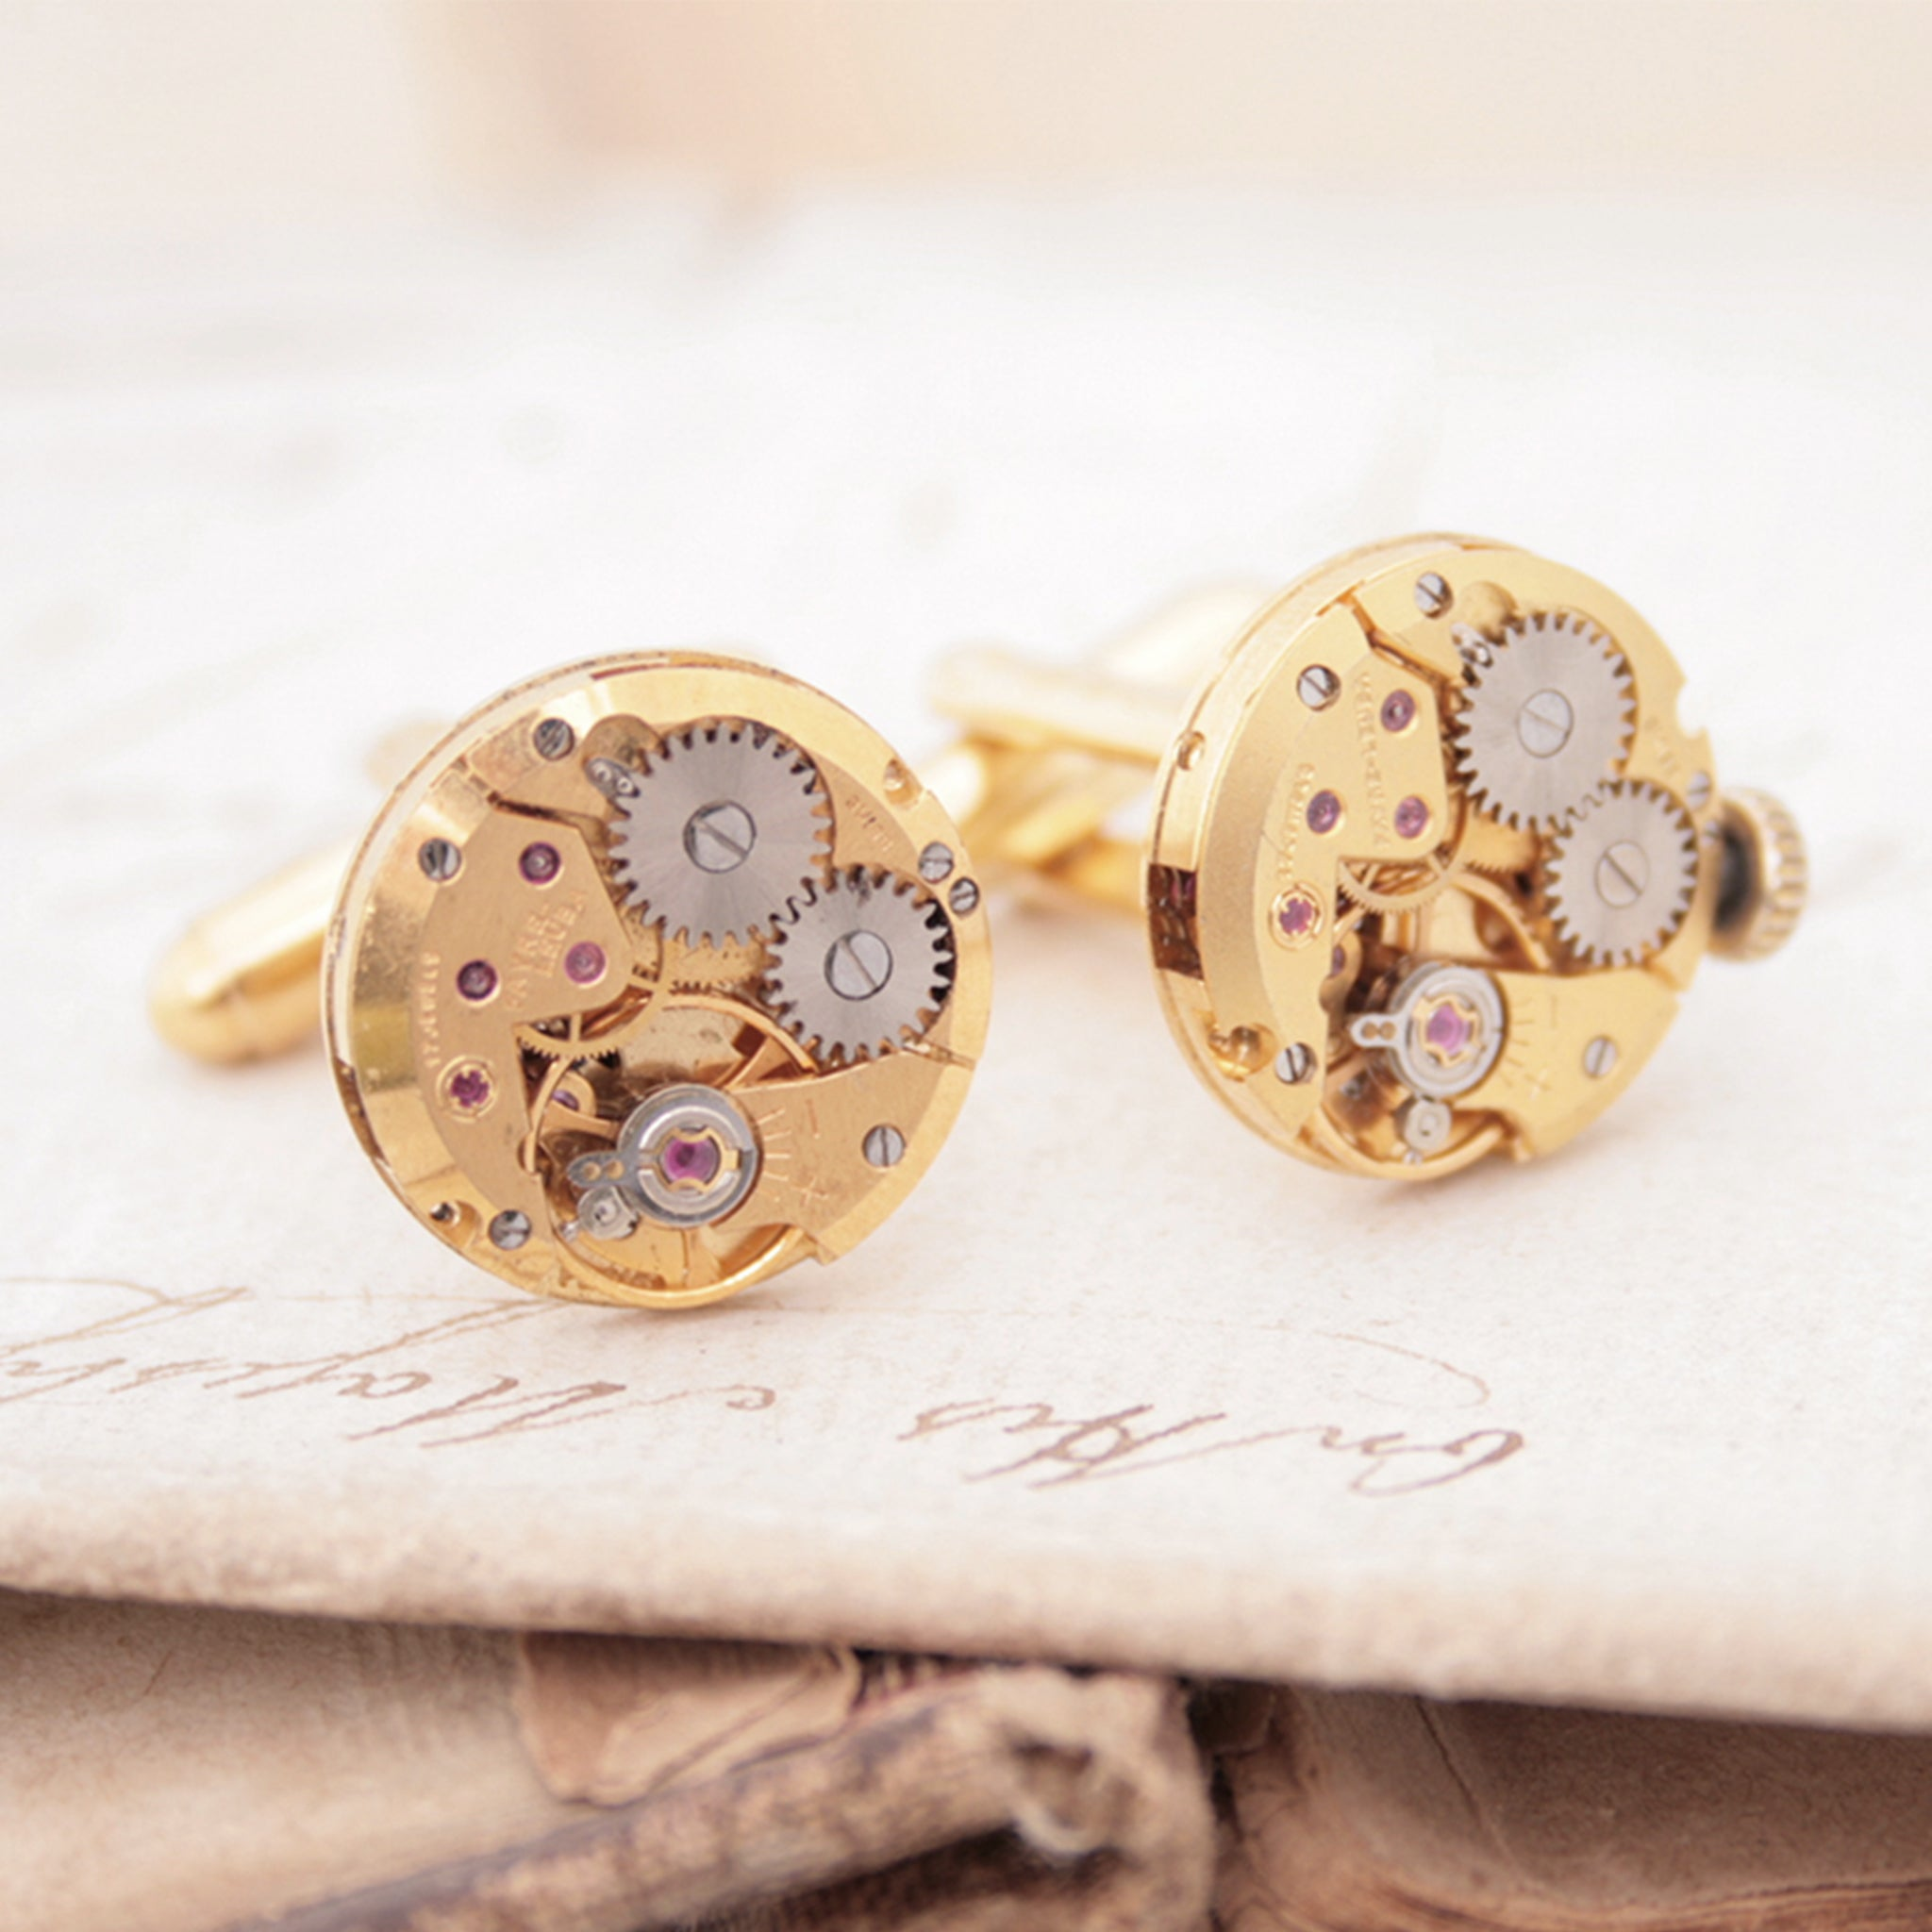 Gold Cufflinks in Steampunk Style